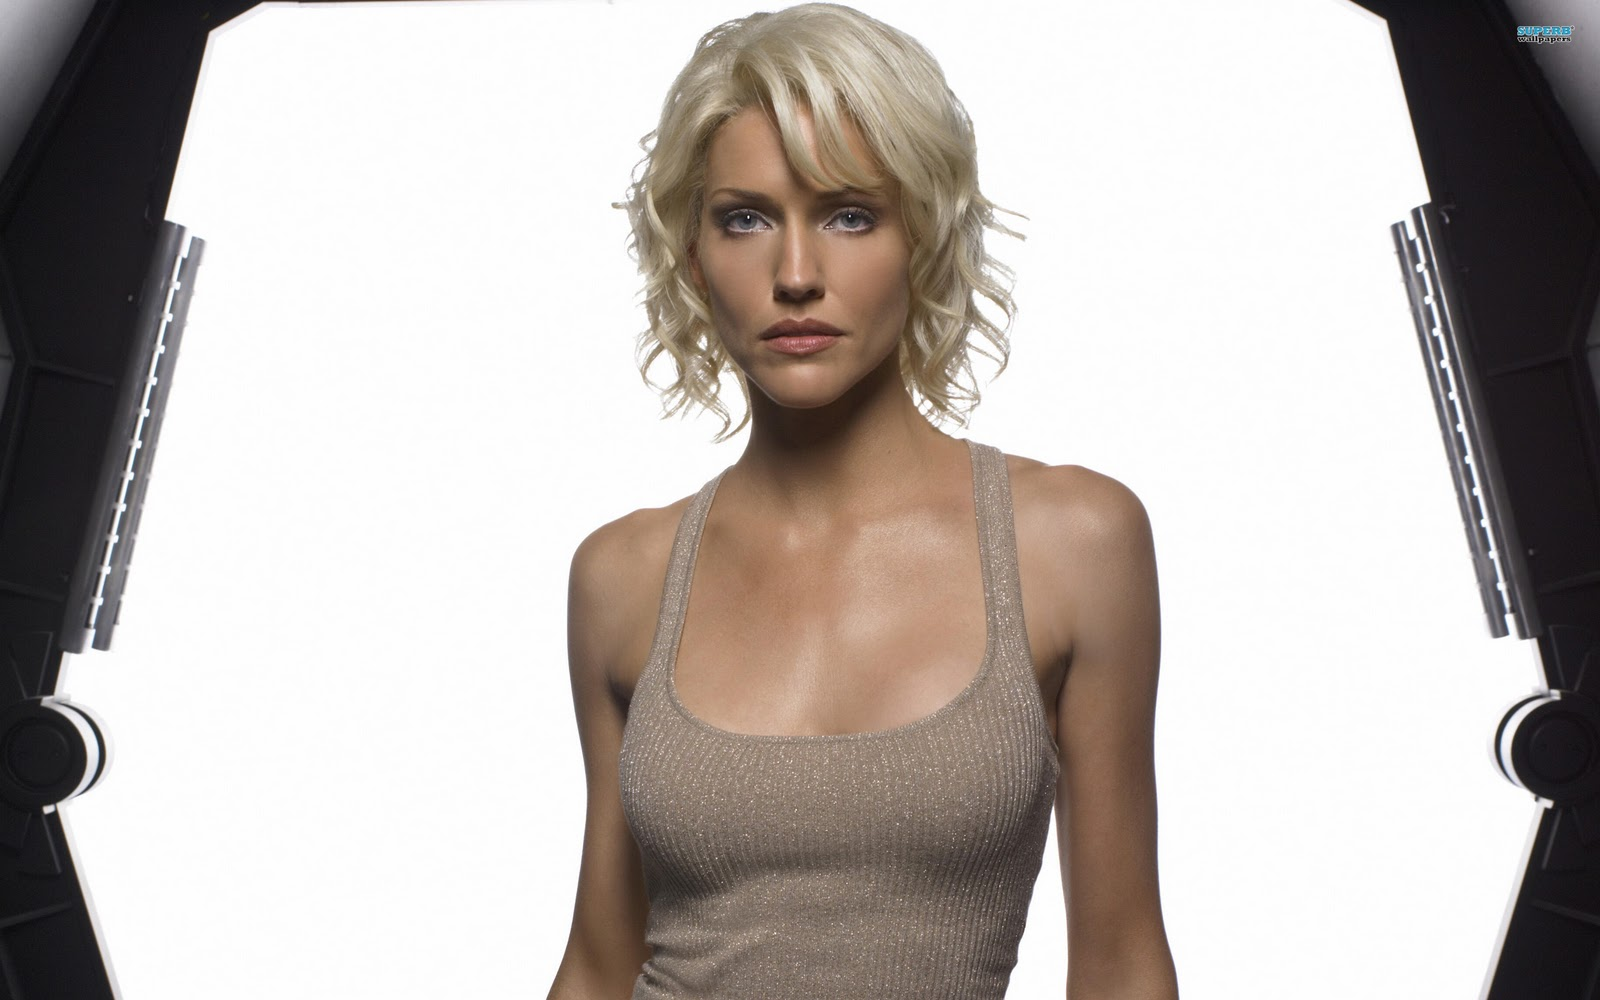 Hollywood: Tricia Helfer Profile, Images And Wallpapers Ashlee Simpson Bio